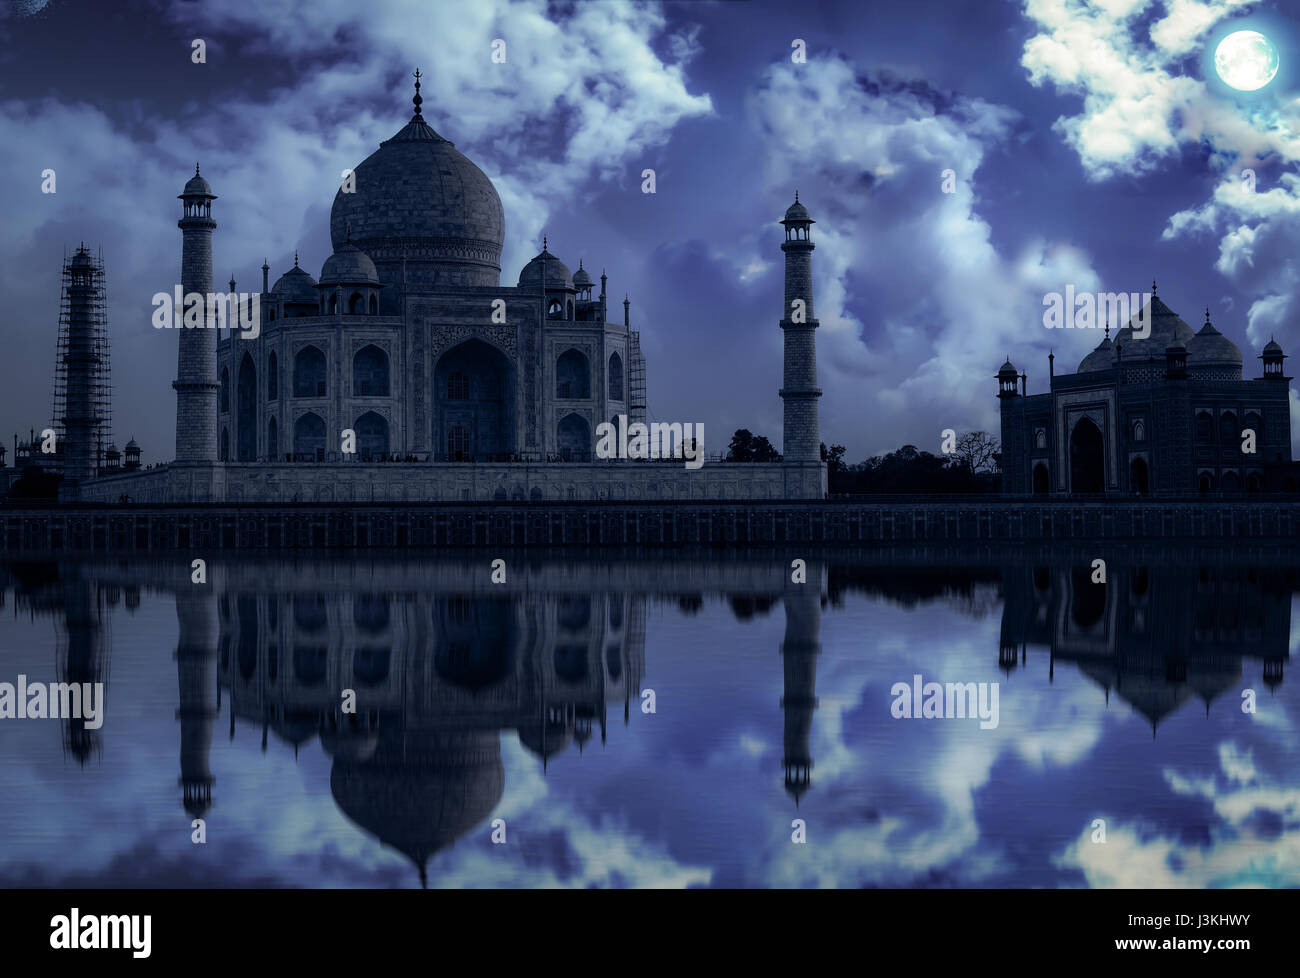 Taj Mahal Agra in moon light effect. Taj Mahal is a white marble mausoleum built by Mughal emperor Shah Jahan on - Stock Image